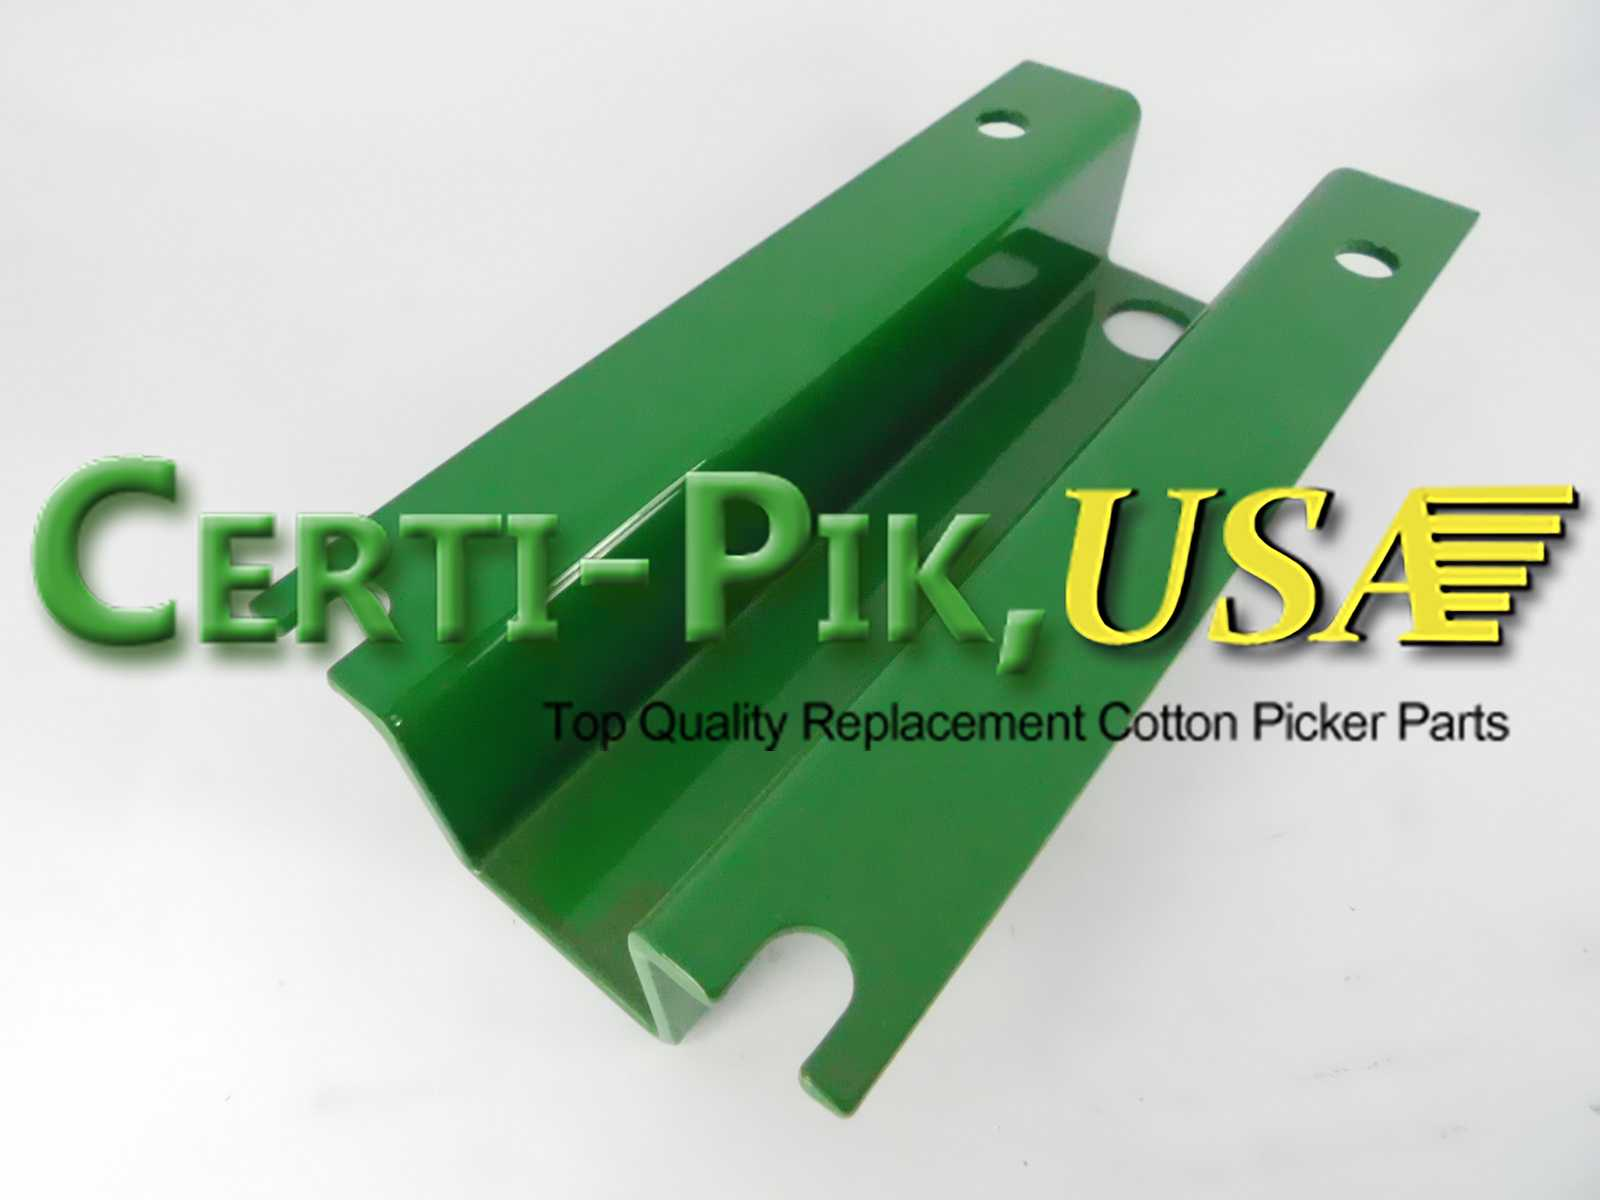 Picking Unit Cabinet: John Deere 9976-CP690 Upper Cabinet N276506 (76506) for Sale